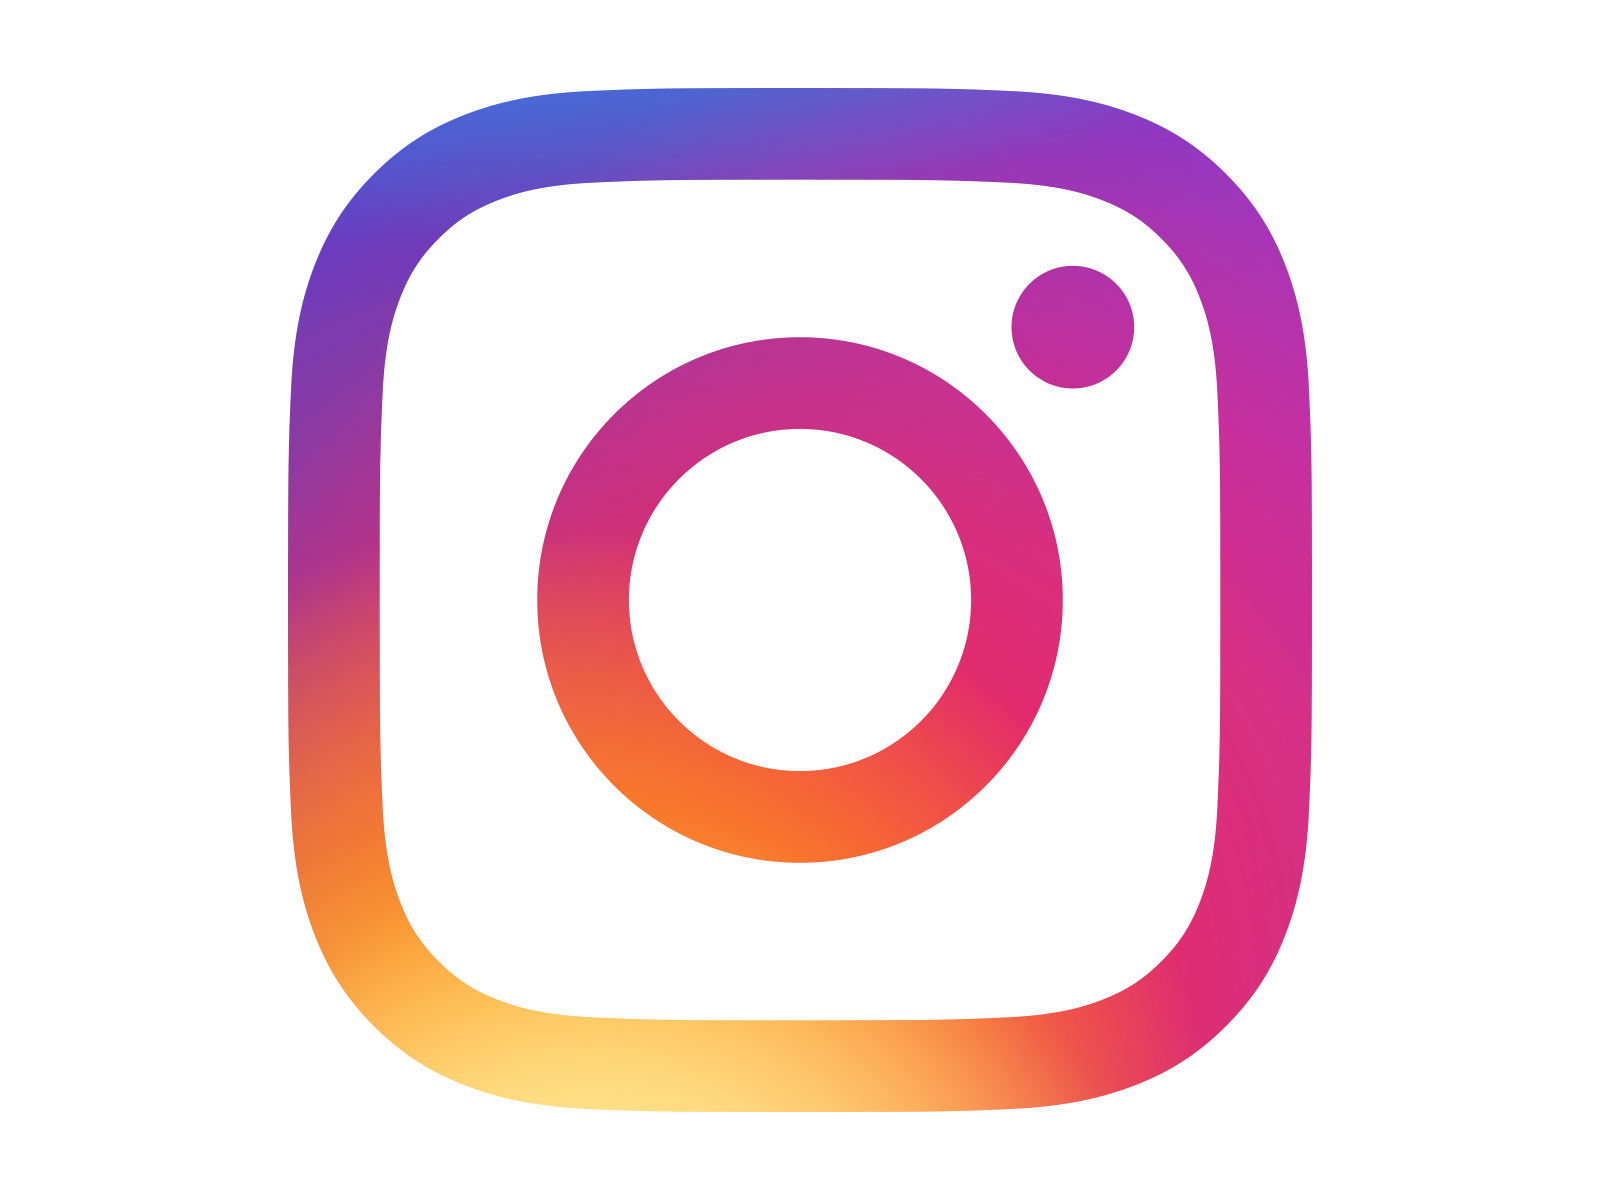 instagram logo gradient transparent